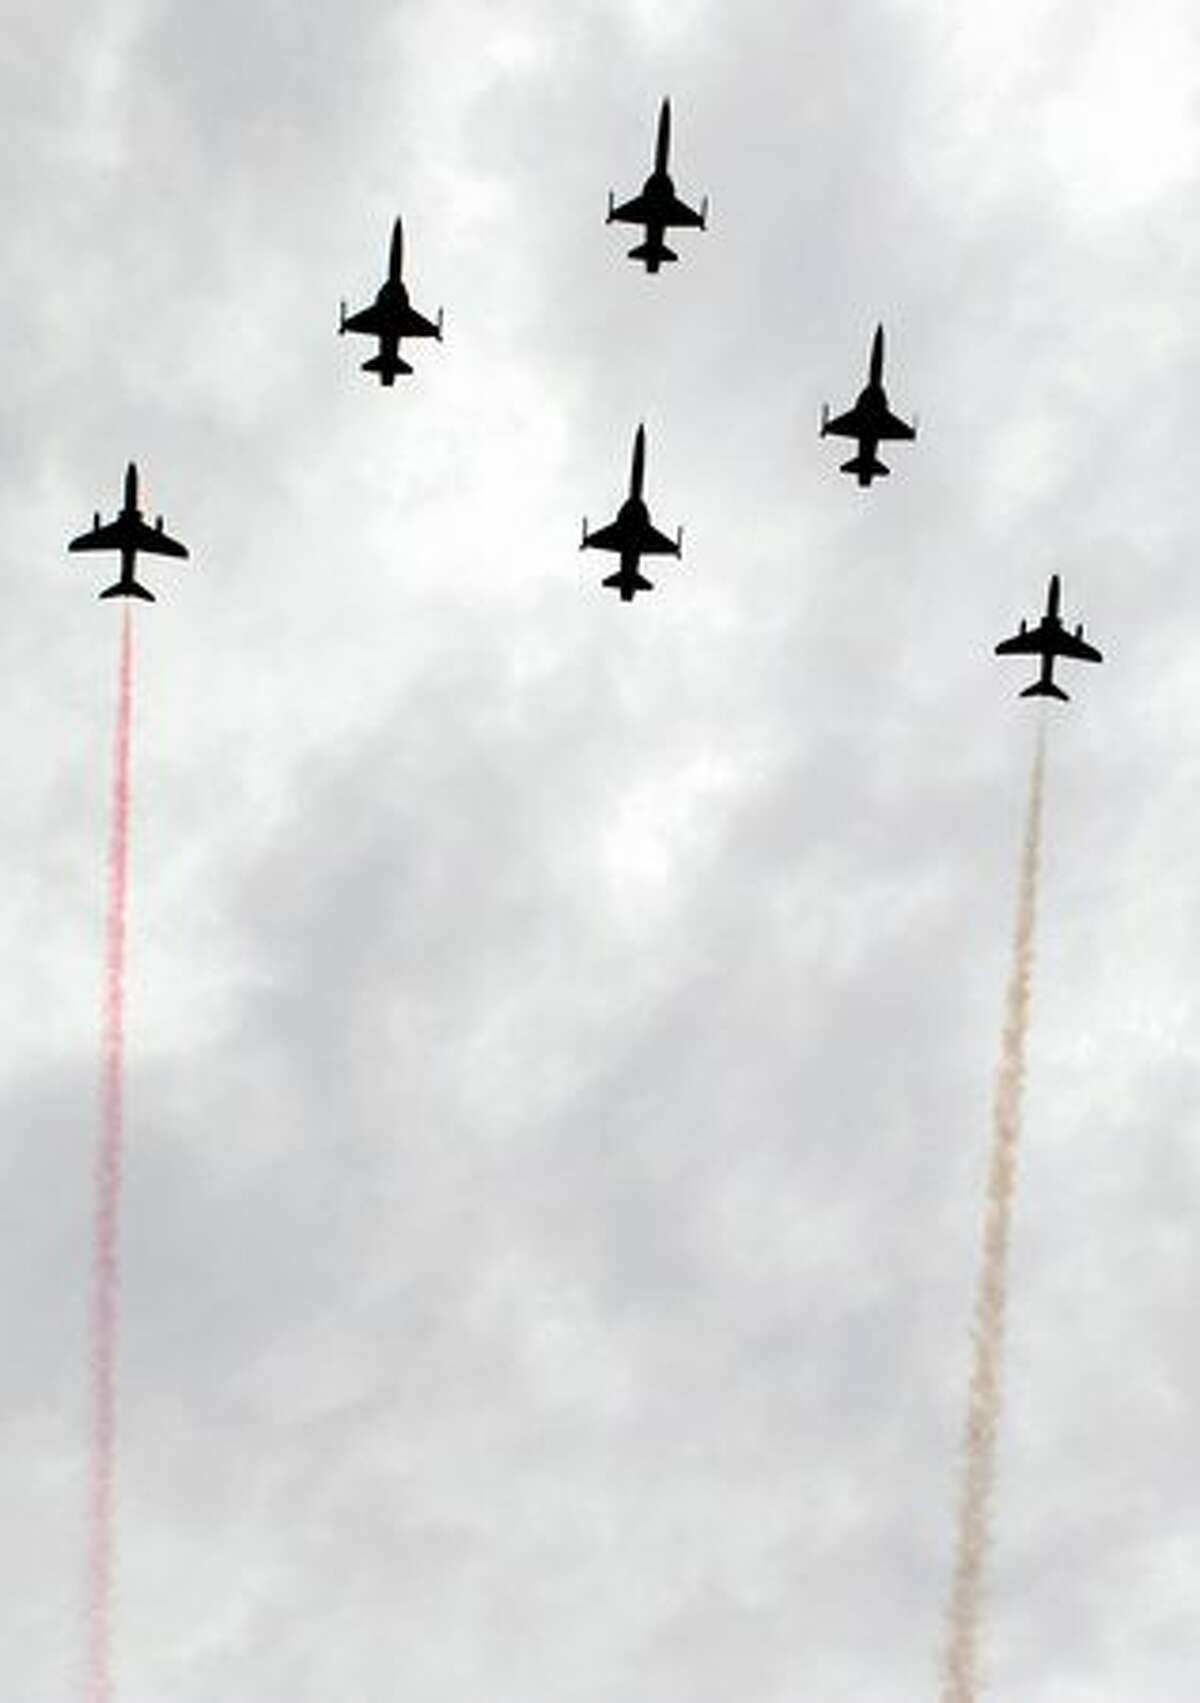 South Korean-made Indonesian fighter jets maneuver during the 65th Indonesian military anniversary in Jakarta.